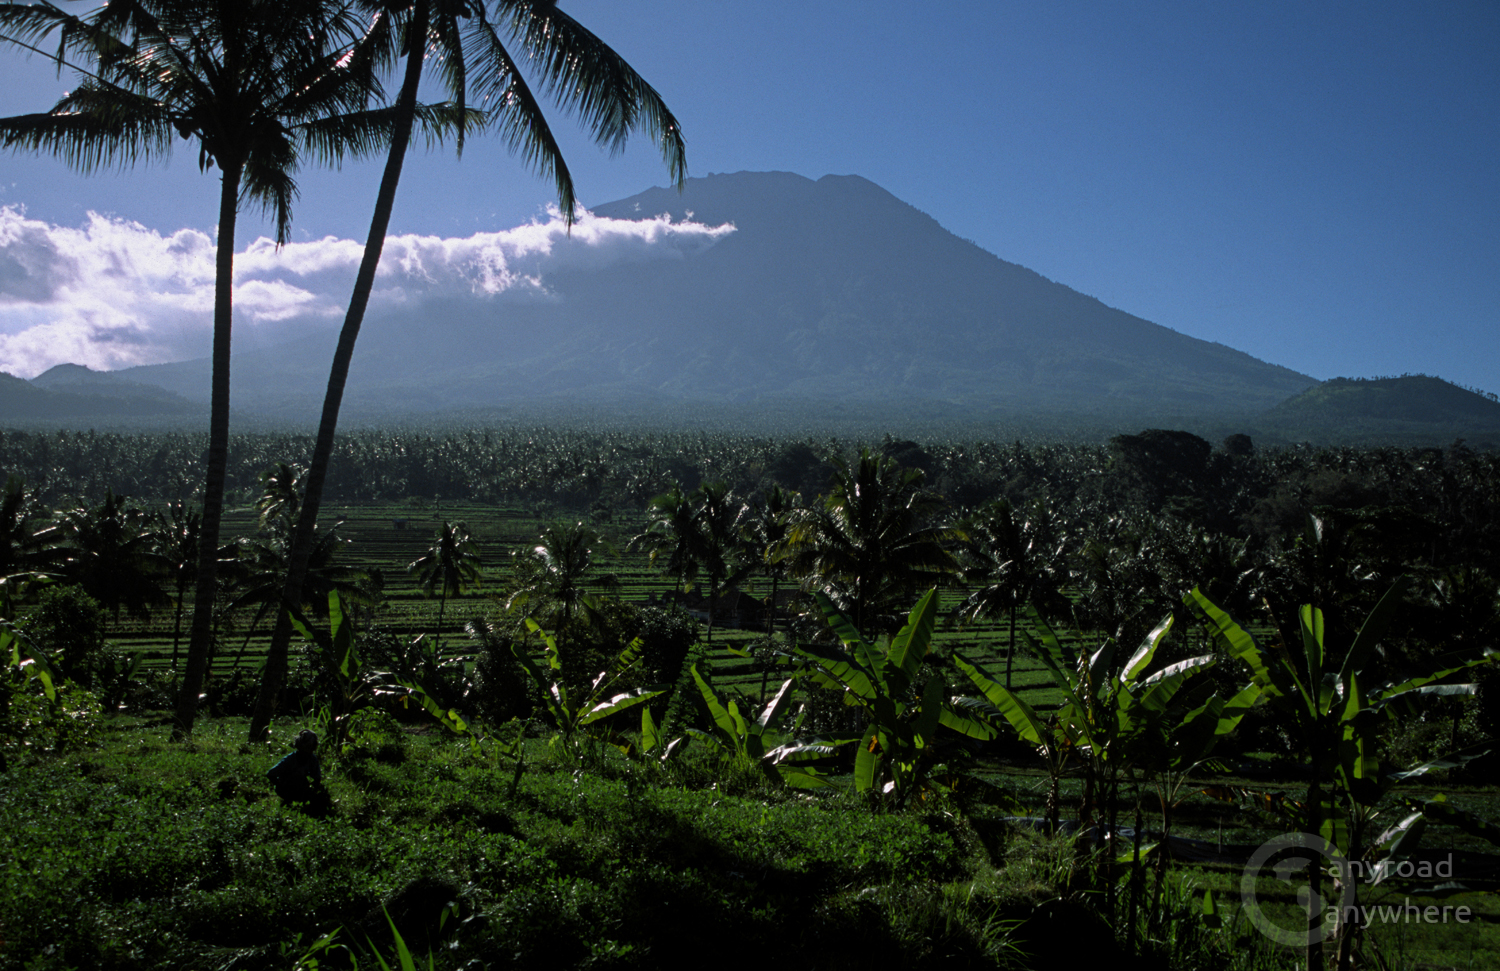 Endless banana plantations in East Bali with Mount Agung